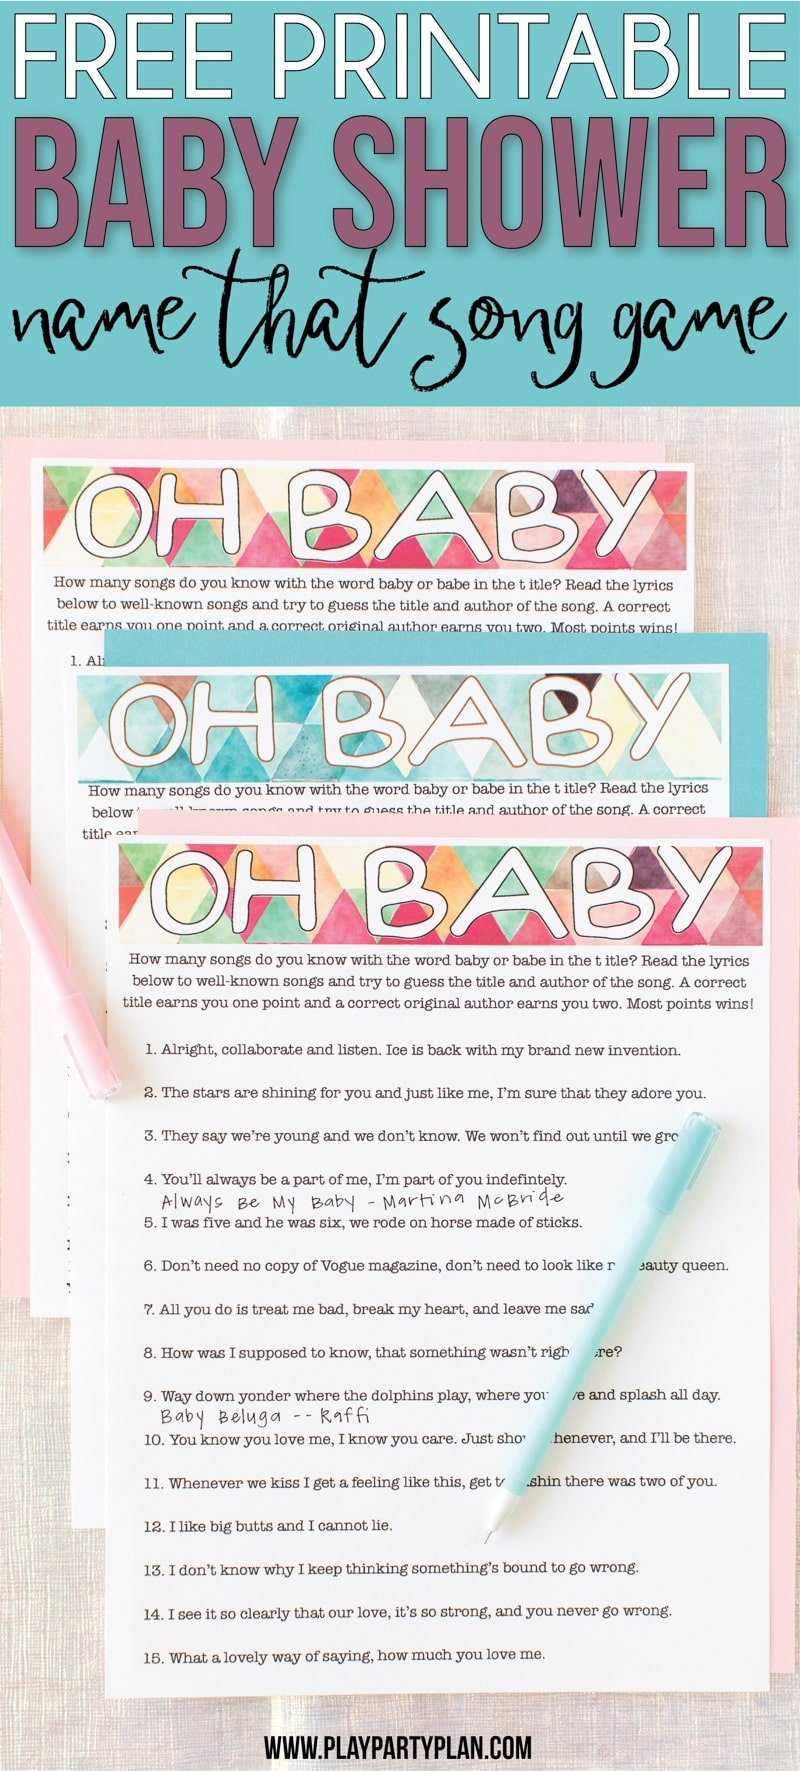 image relating to Baby Boy Shower Games Free Printable named Absolutely free Printable Kid Shower Music Guessing Match - Enjoy Occasion System